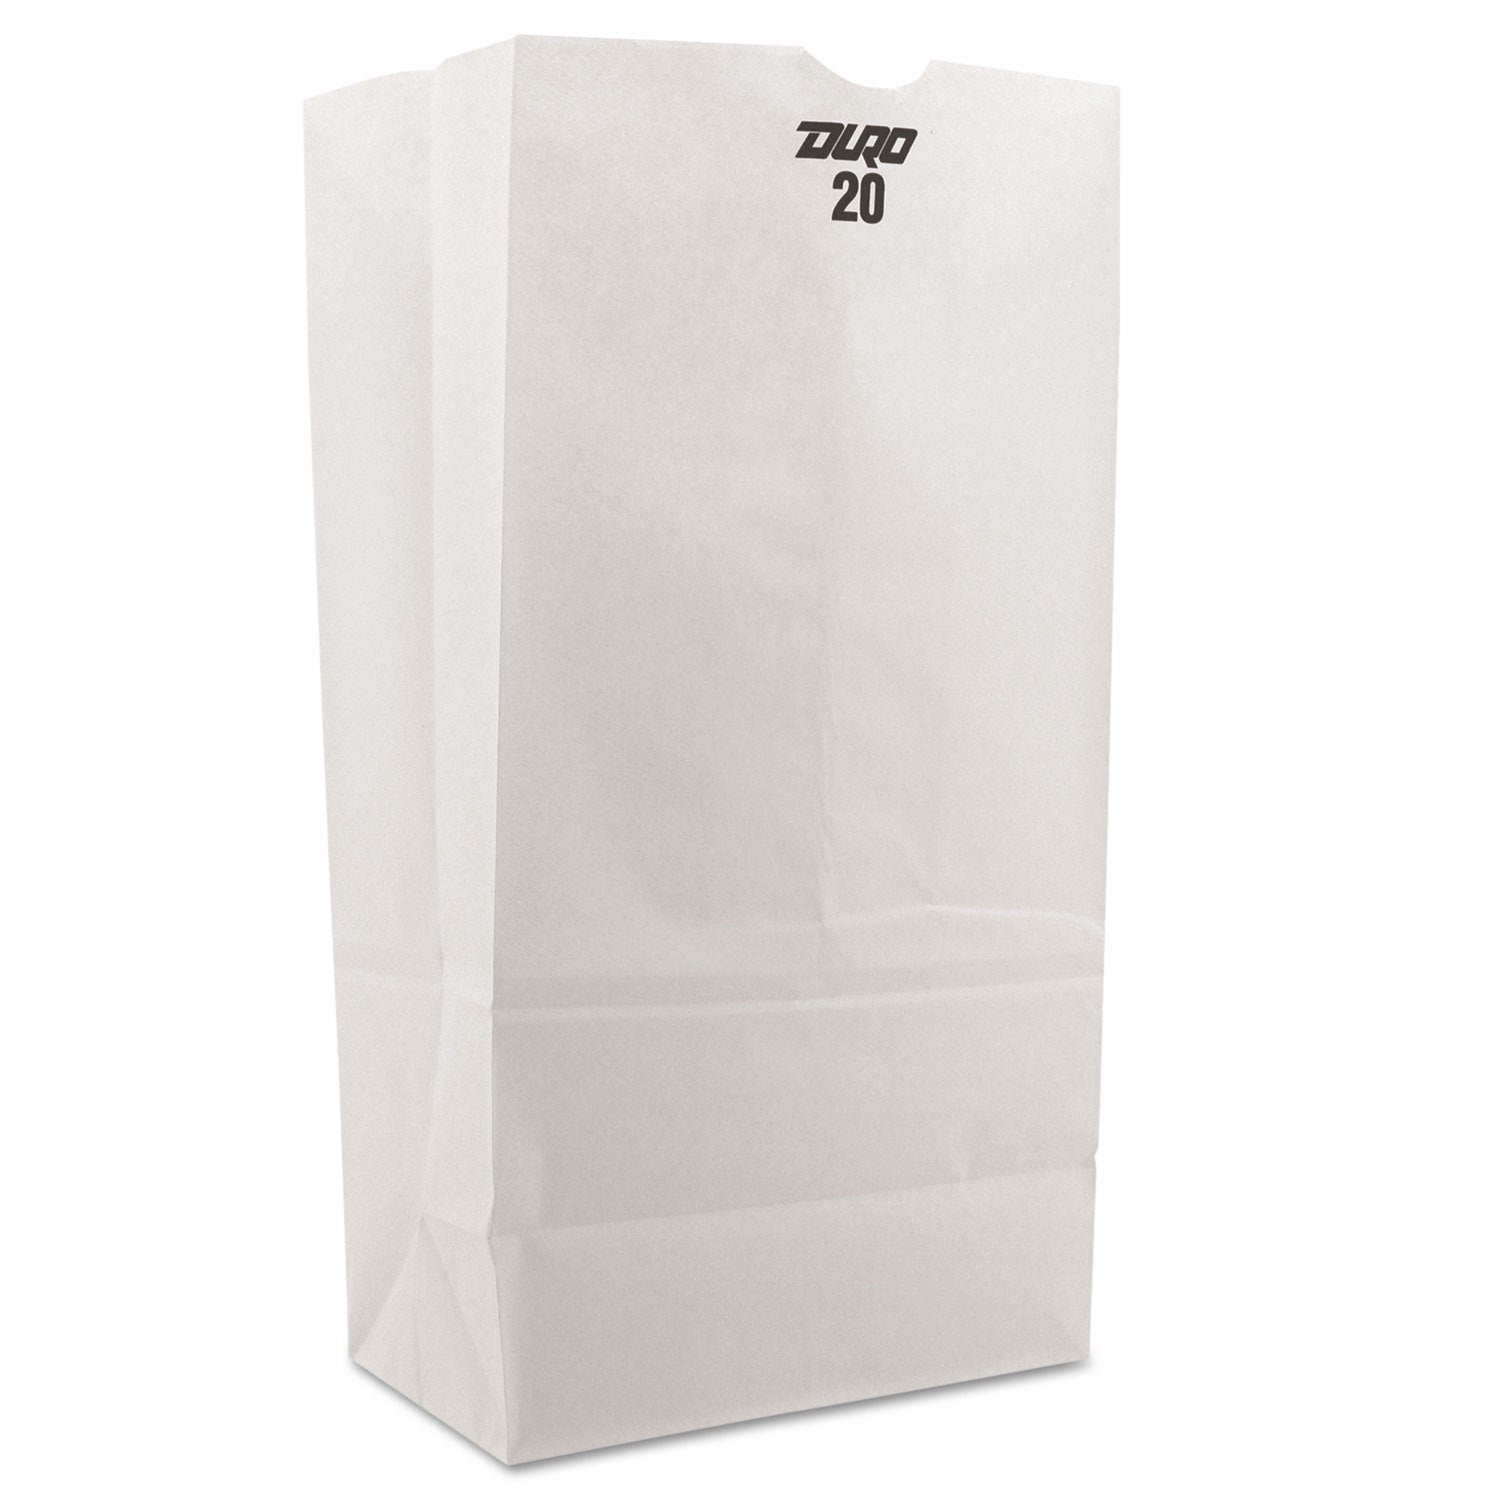 General 20 Paper Grocery Bag 40-pound White Standard 8 1/...